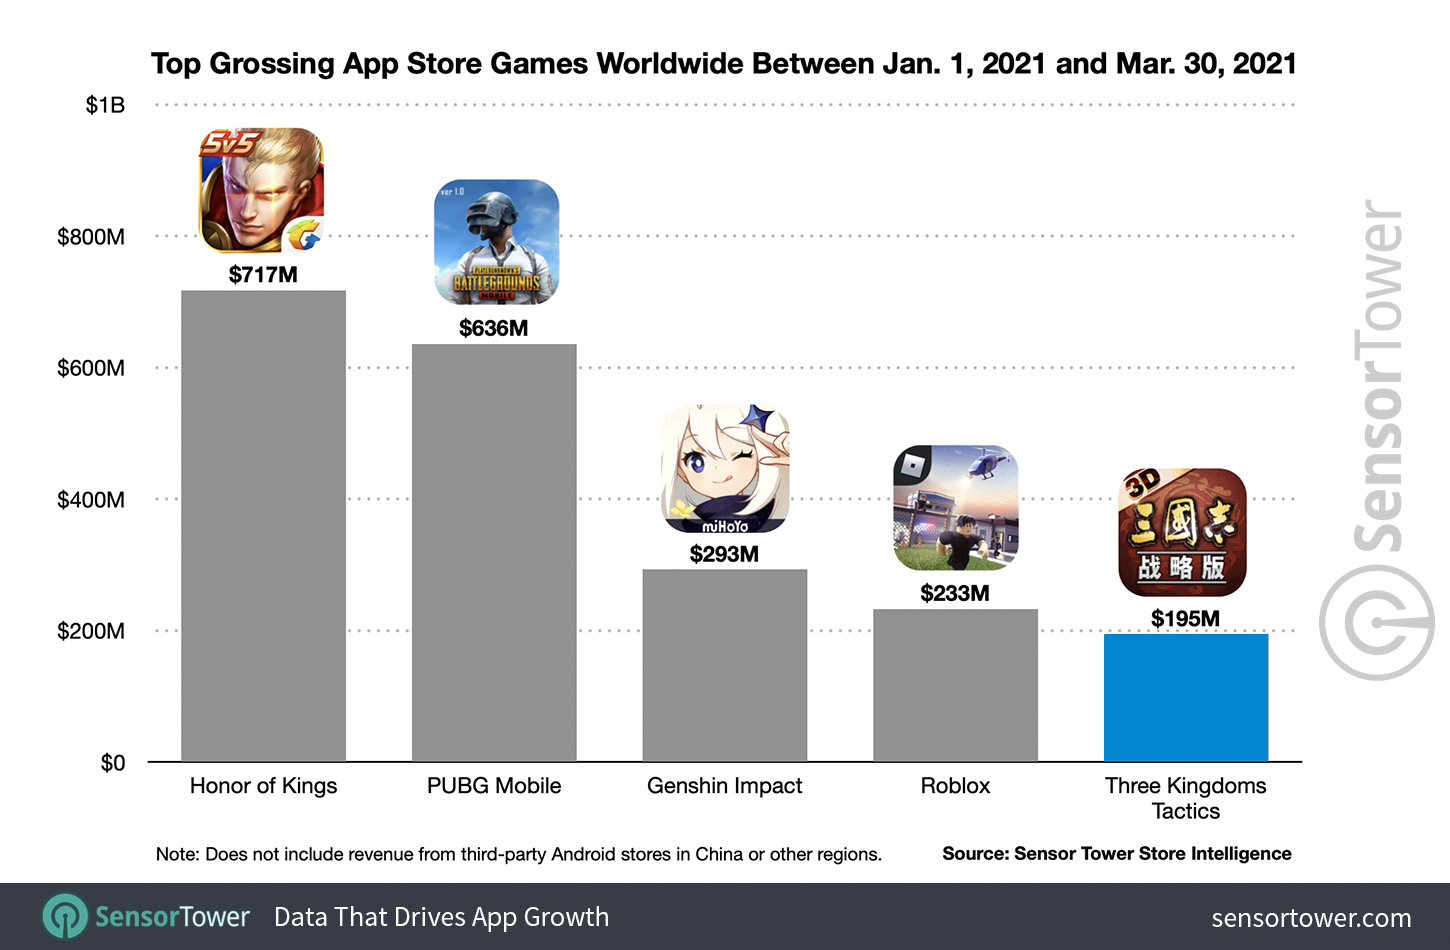 Top Grossing App Store Games Worldwide Between January 1 to March 30 2021